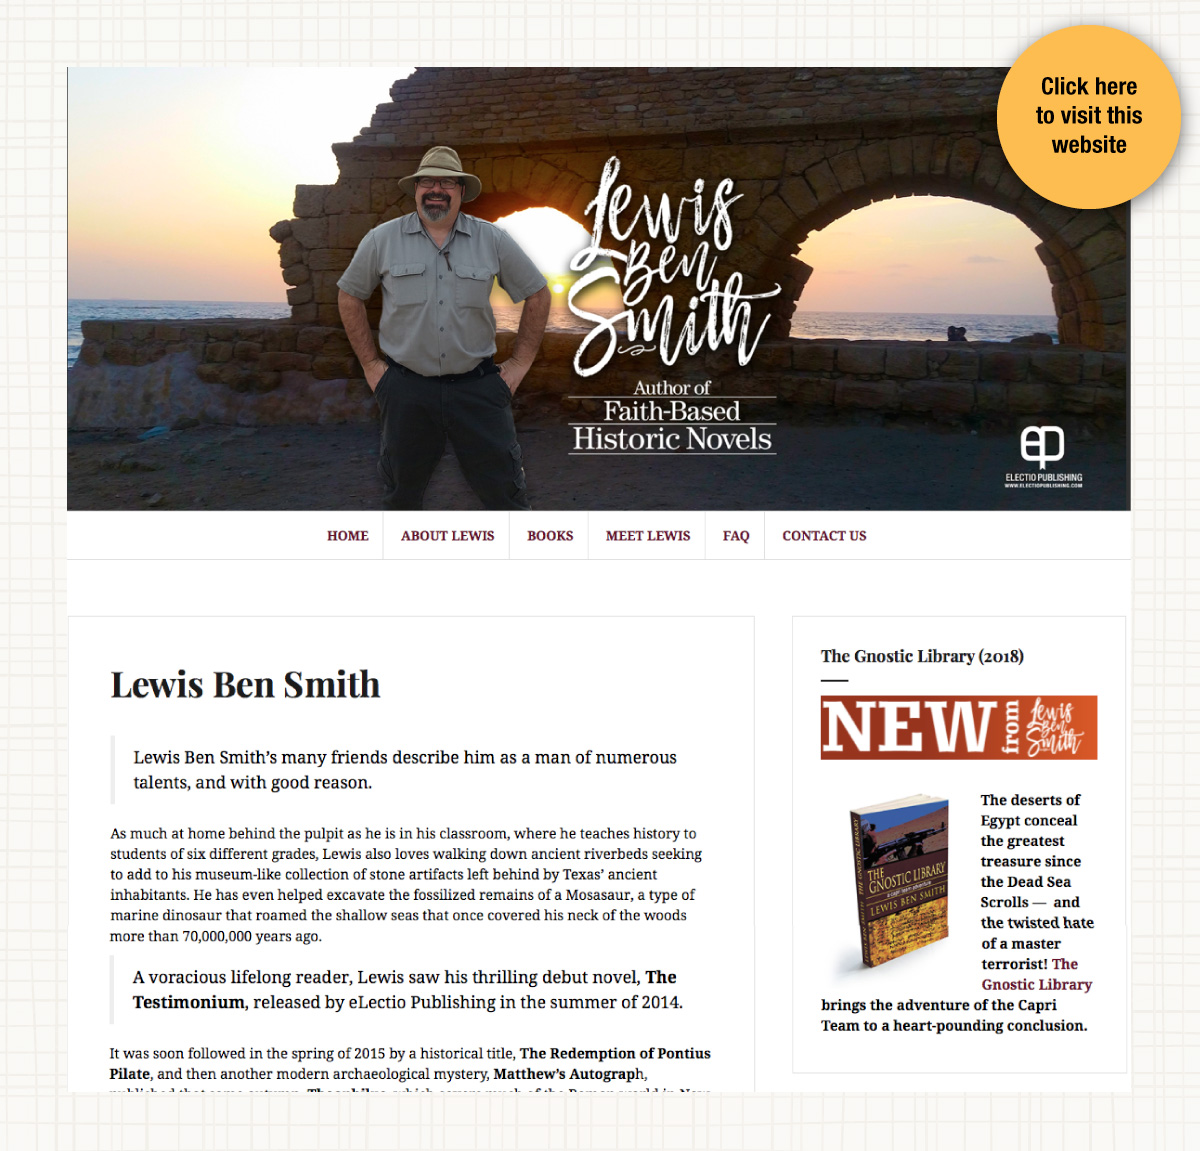 Website for author Lewis Ben Smith